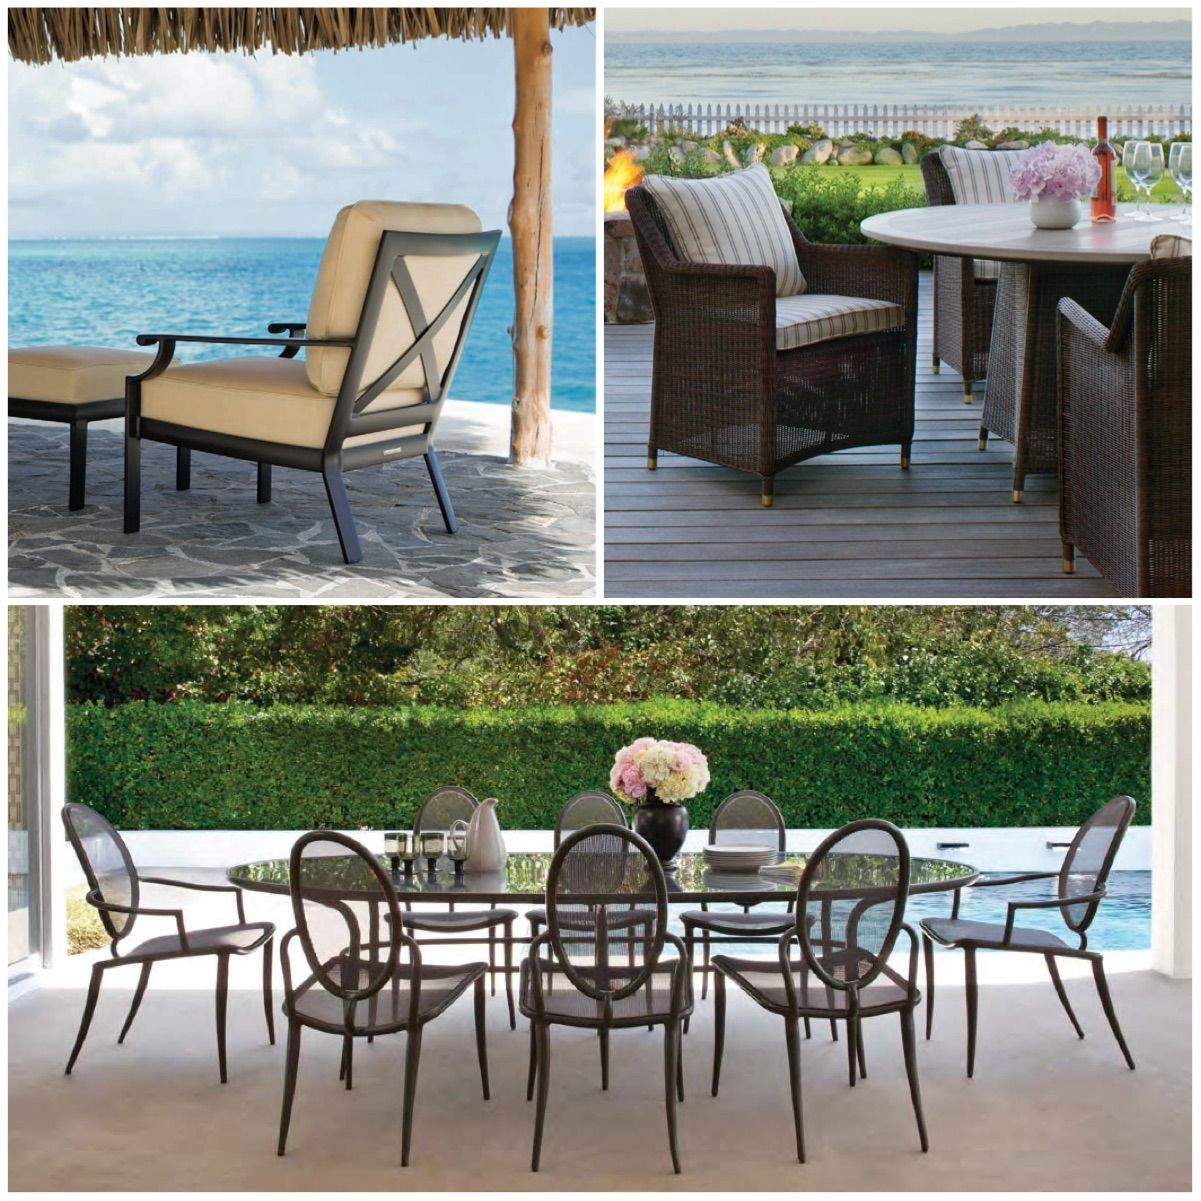 50 Luxury Patio Furniture Collections Brown Jordan Outdoor Furniture Luxury Patio Furniture Patio Furniture Collection